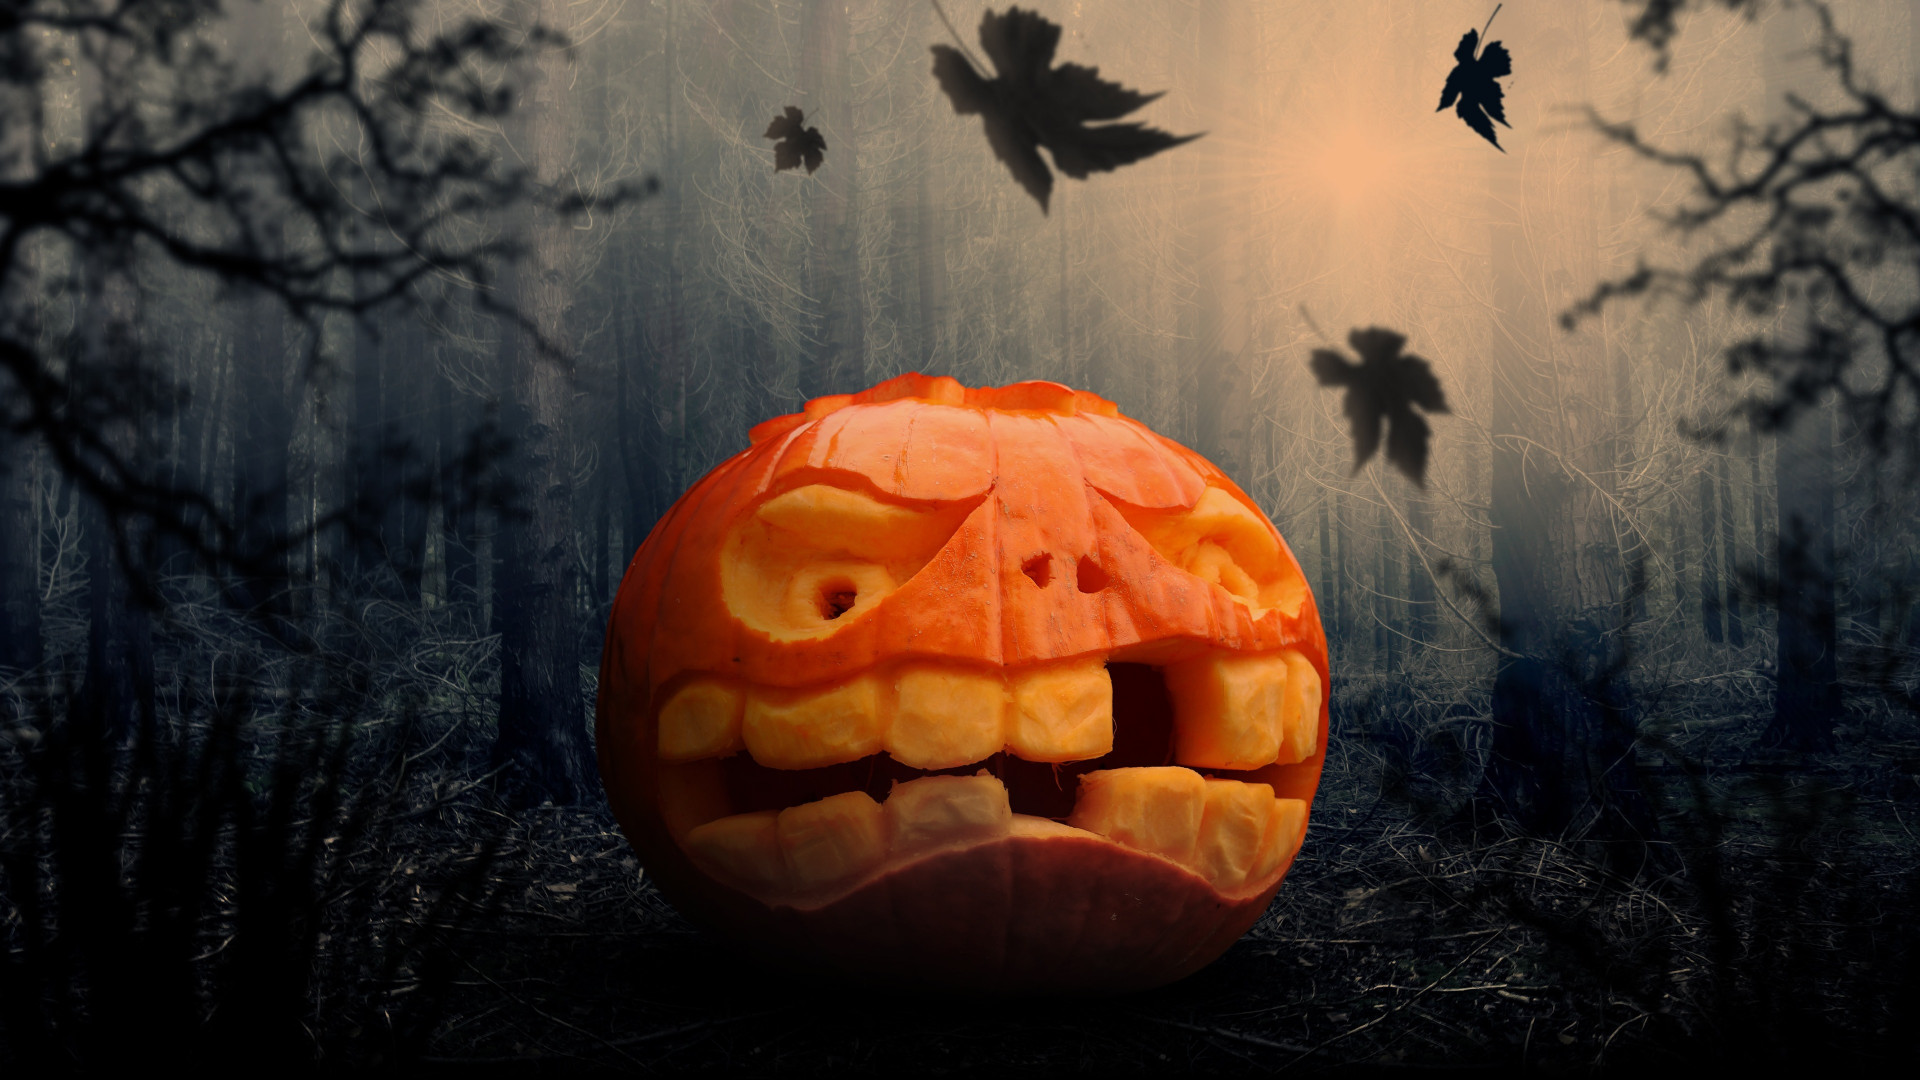 Halloween pumpkin wallpaper 1920x1080